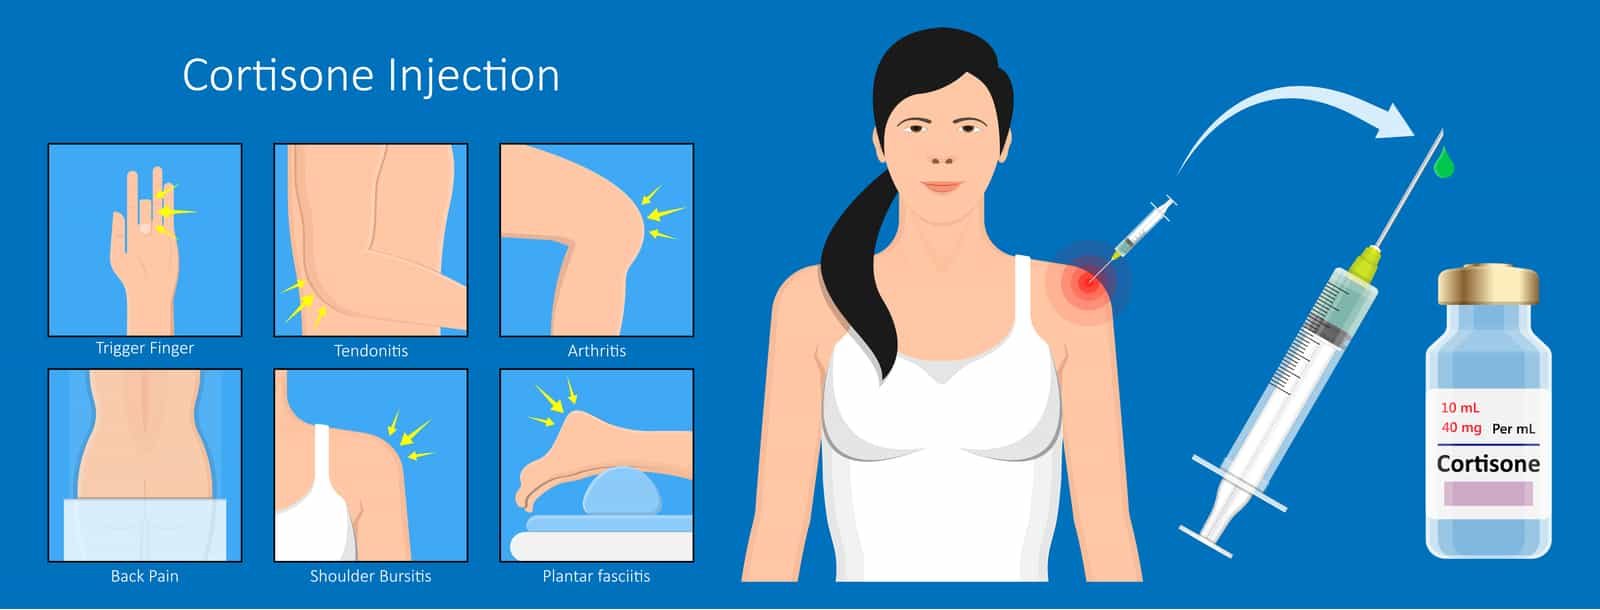 cortisone injections1